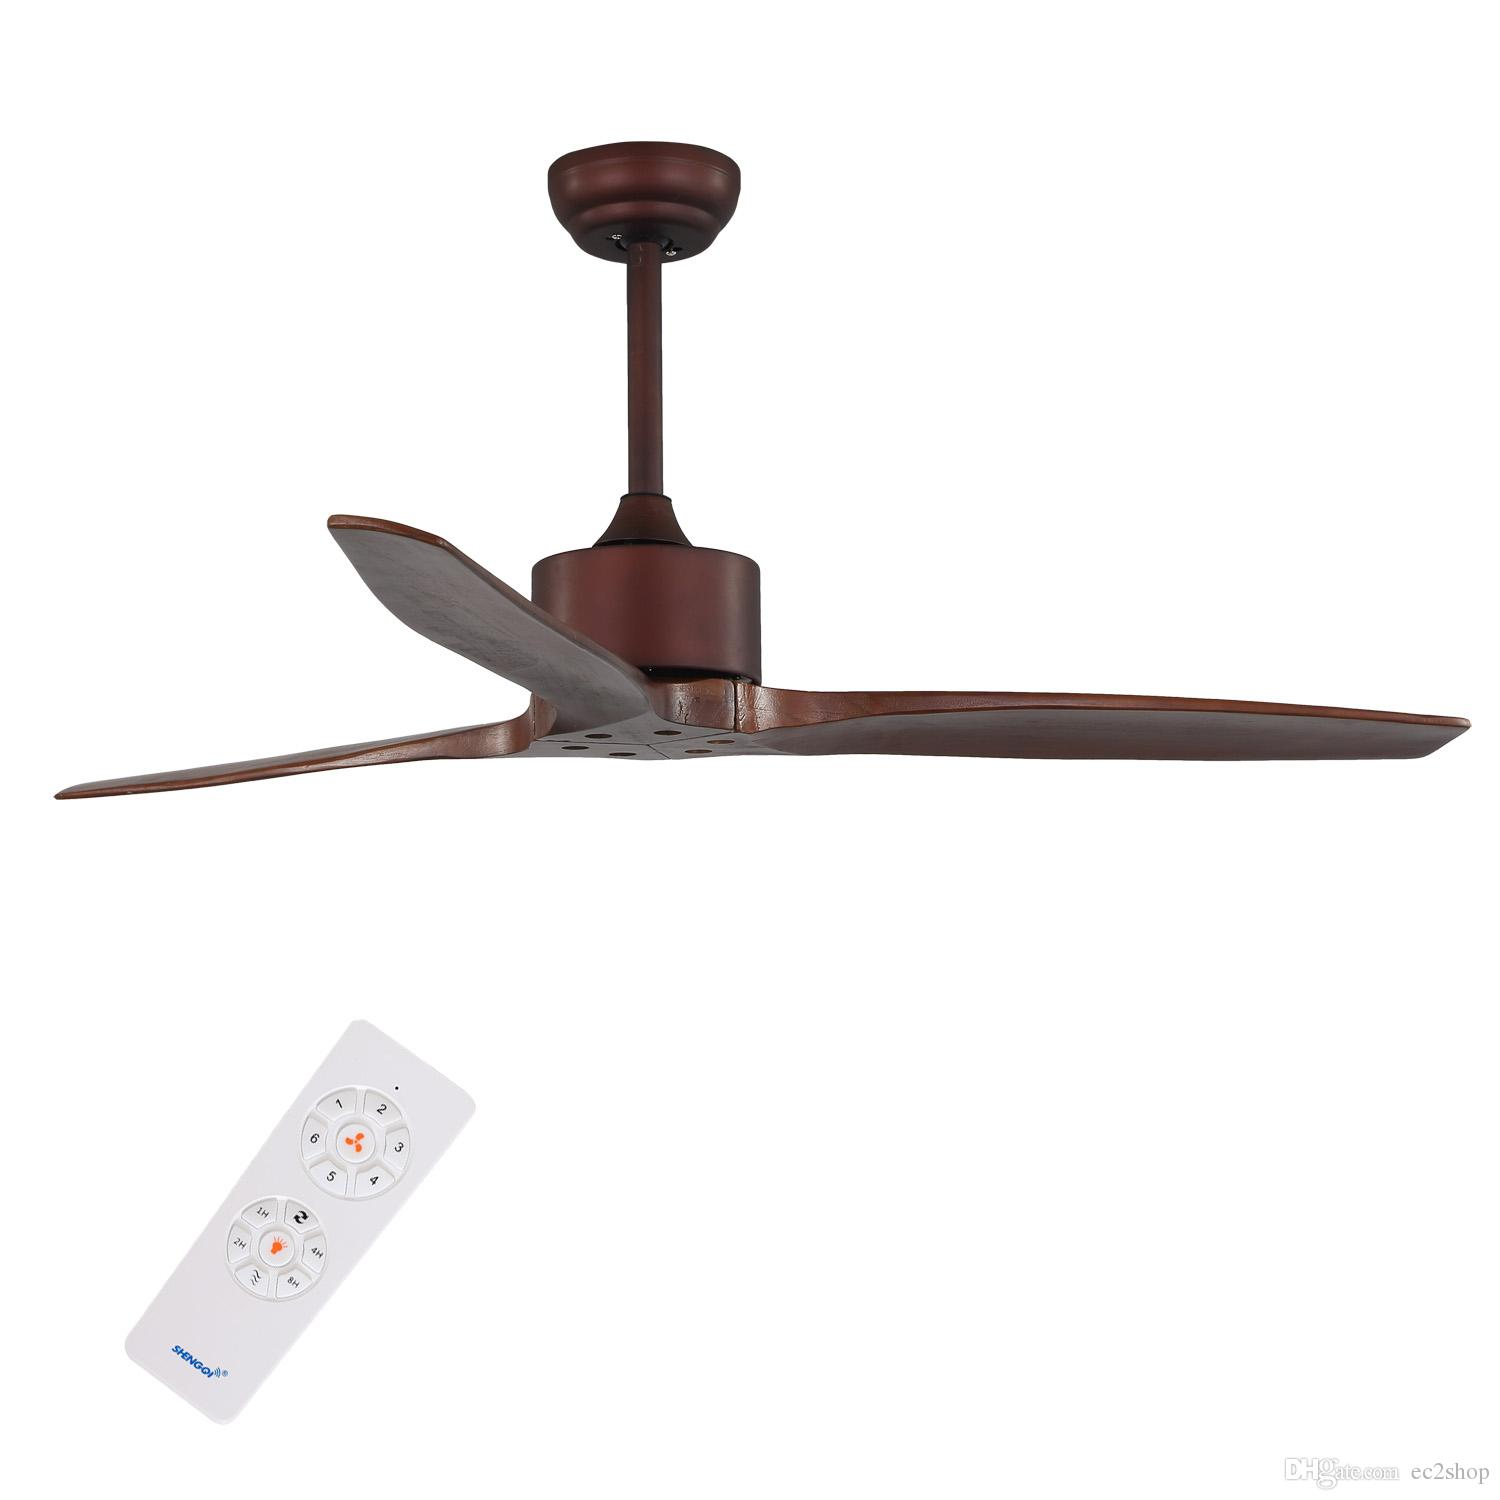 durable ceiling fan energy manufacture quality photos com design fans bathgroundspath of electromech luxury